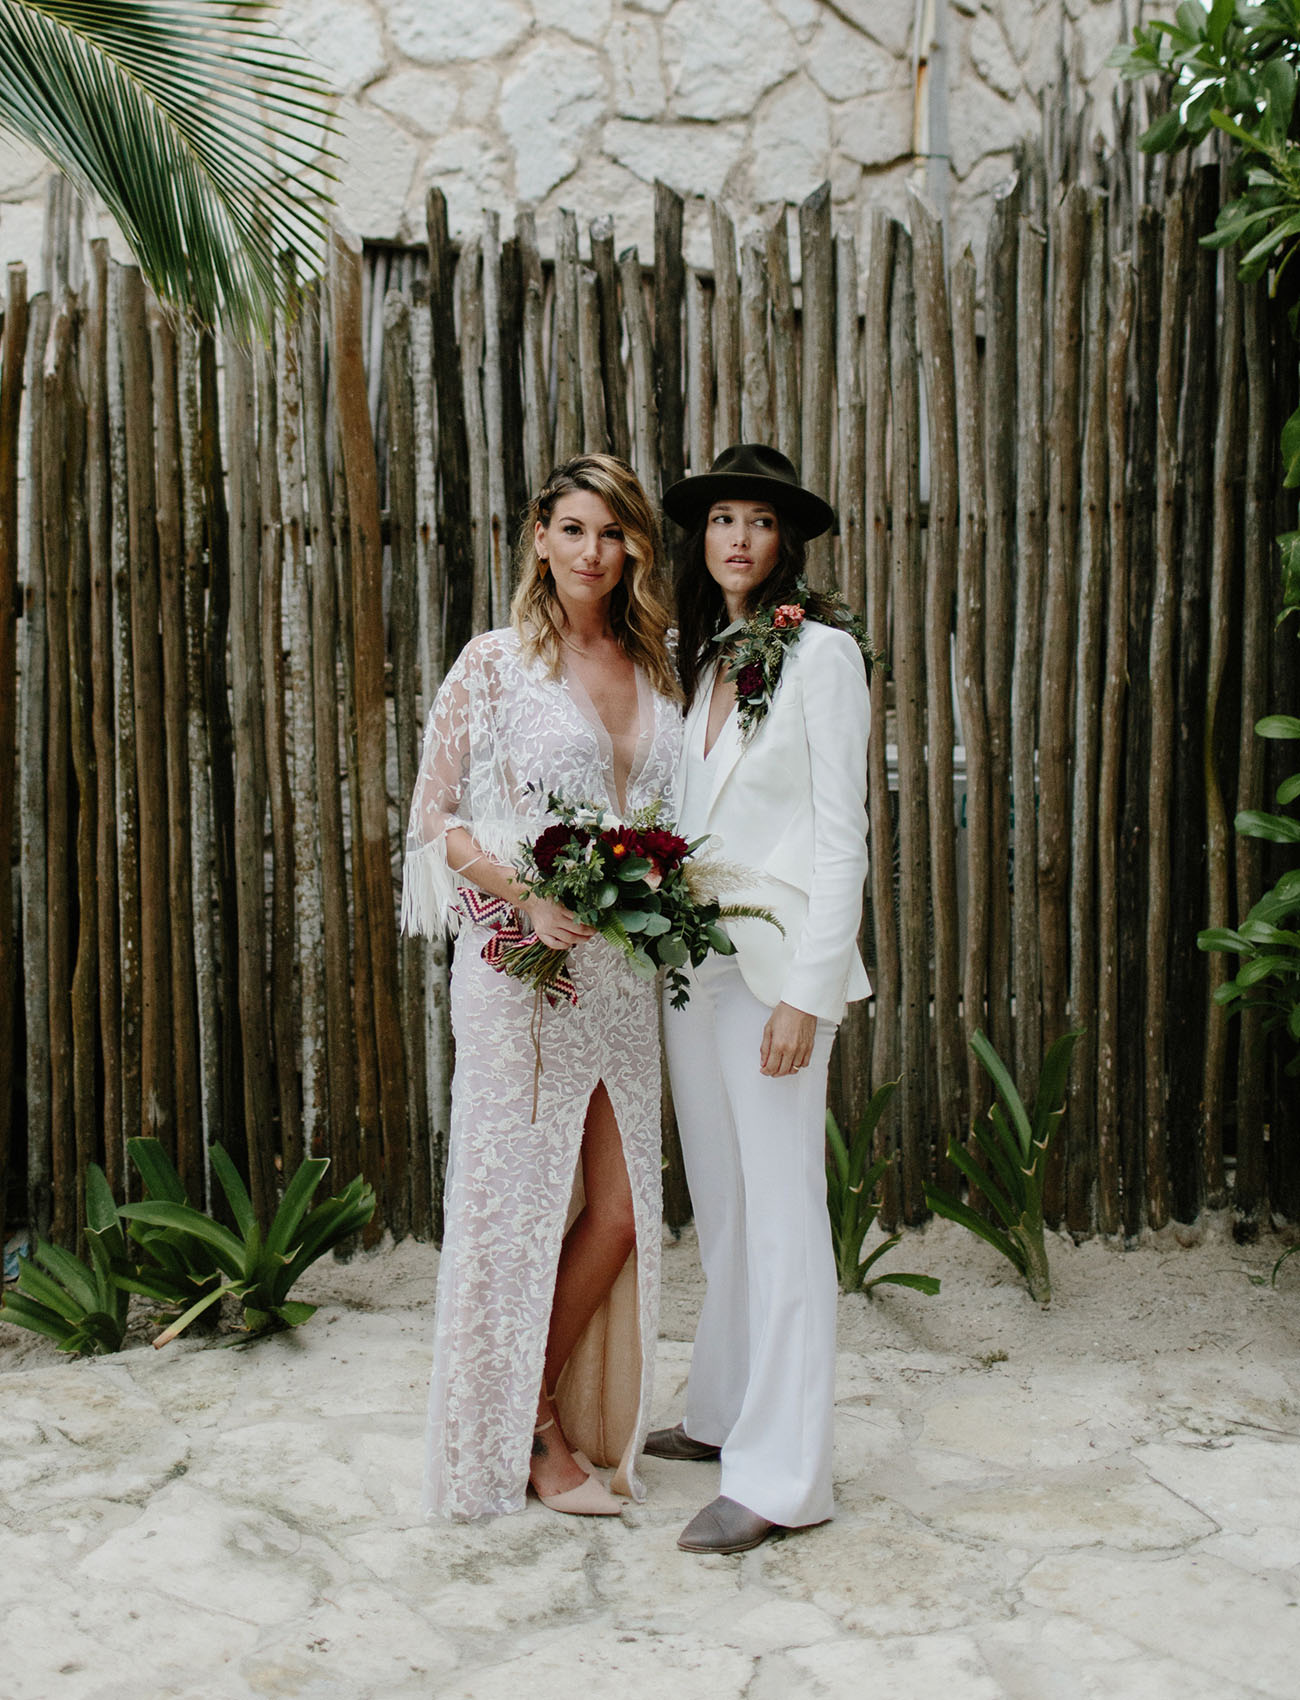 This beautiful couple got married in Tulum, the wedding was with rock n roll and moody vibes